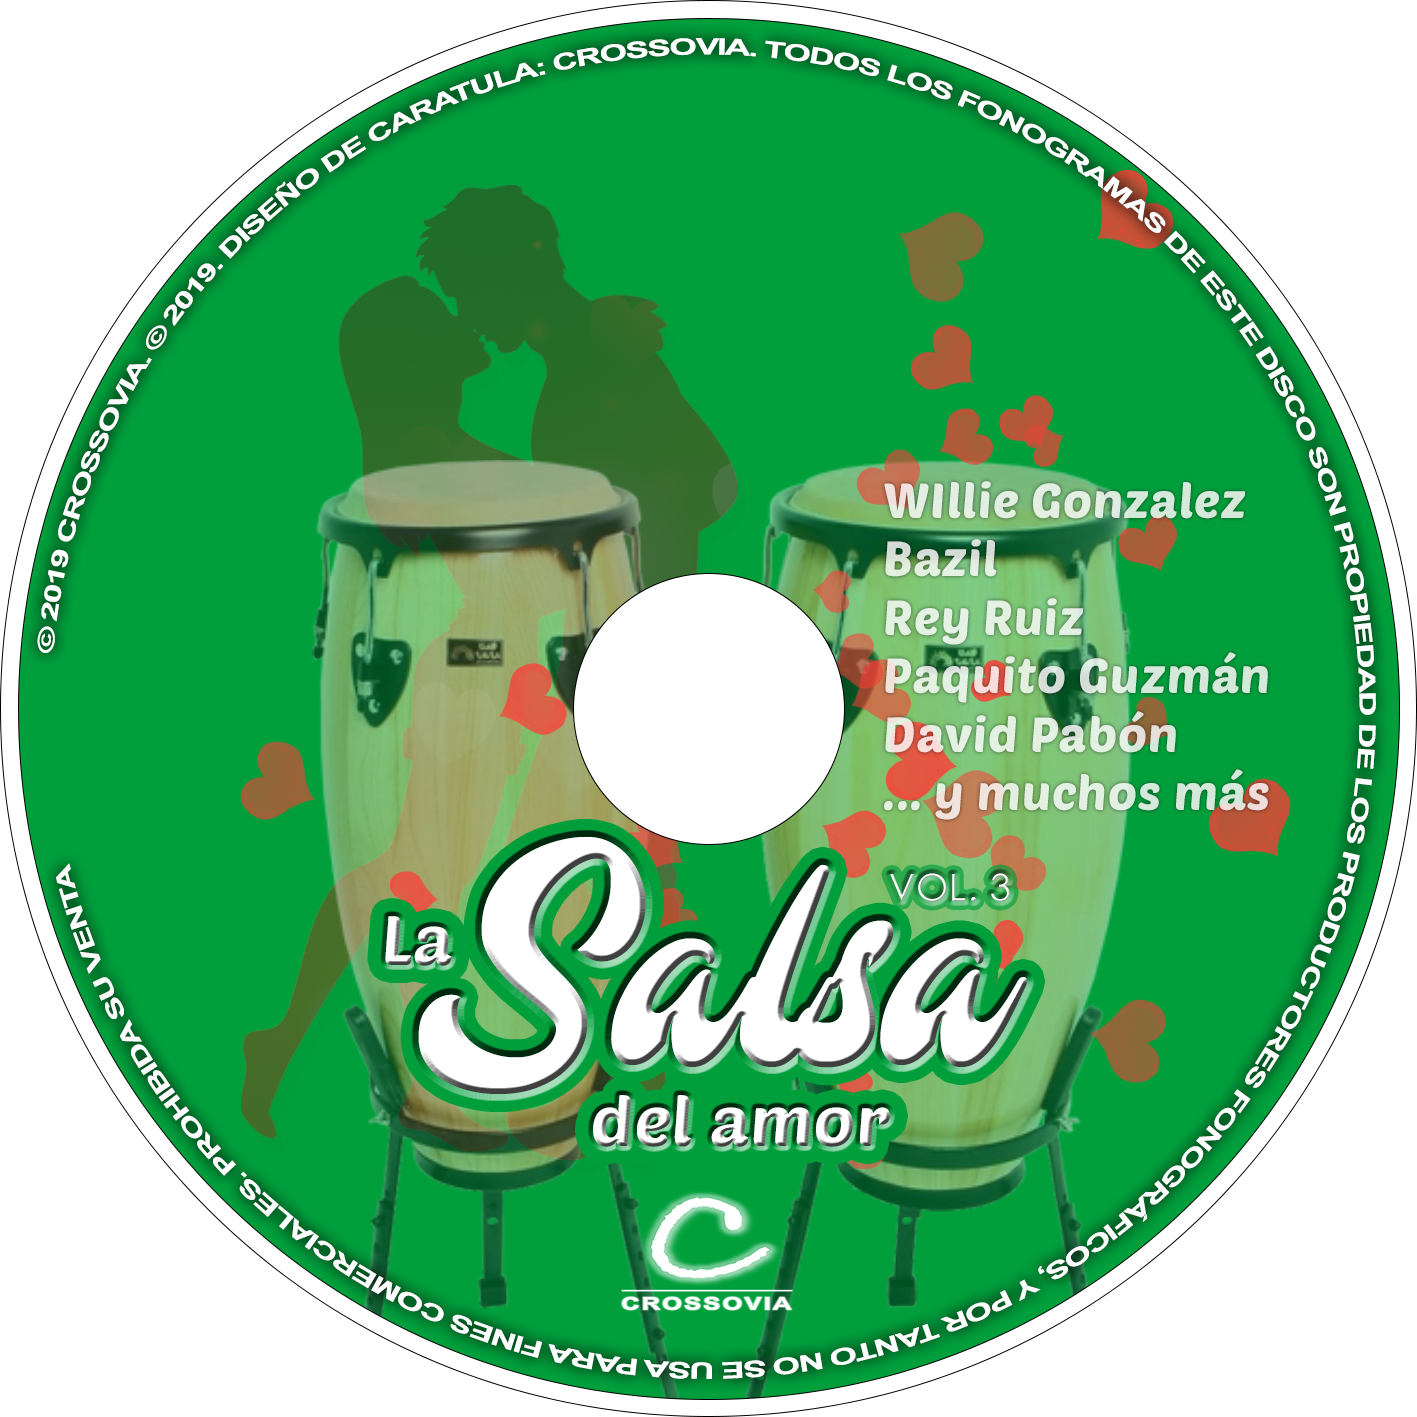 La salsa del amor vol 3 2019 crossovia for Jardin prohibido salsa